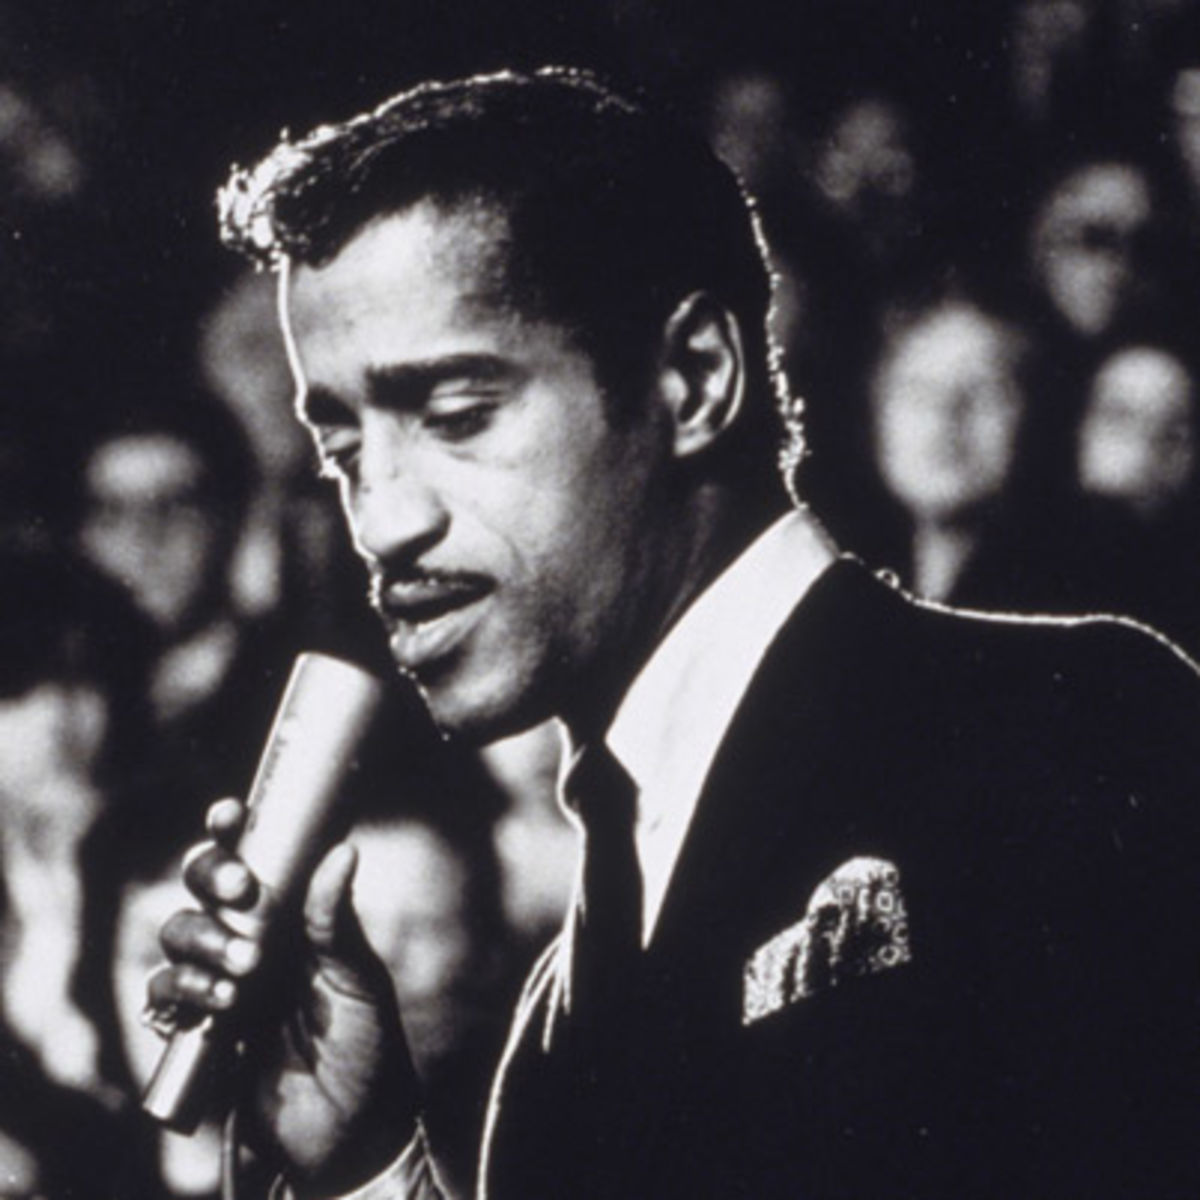 a biography of sammy davis jr Sammy davis jr biography (wikipedia) samuel george davis jr (december 8,  1925 – may 16, 1990) was an american singer, musician,.